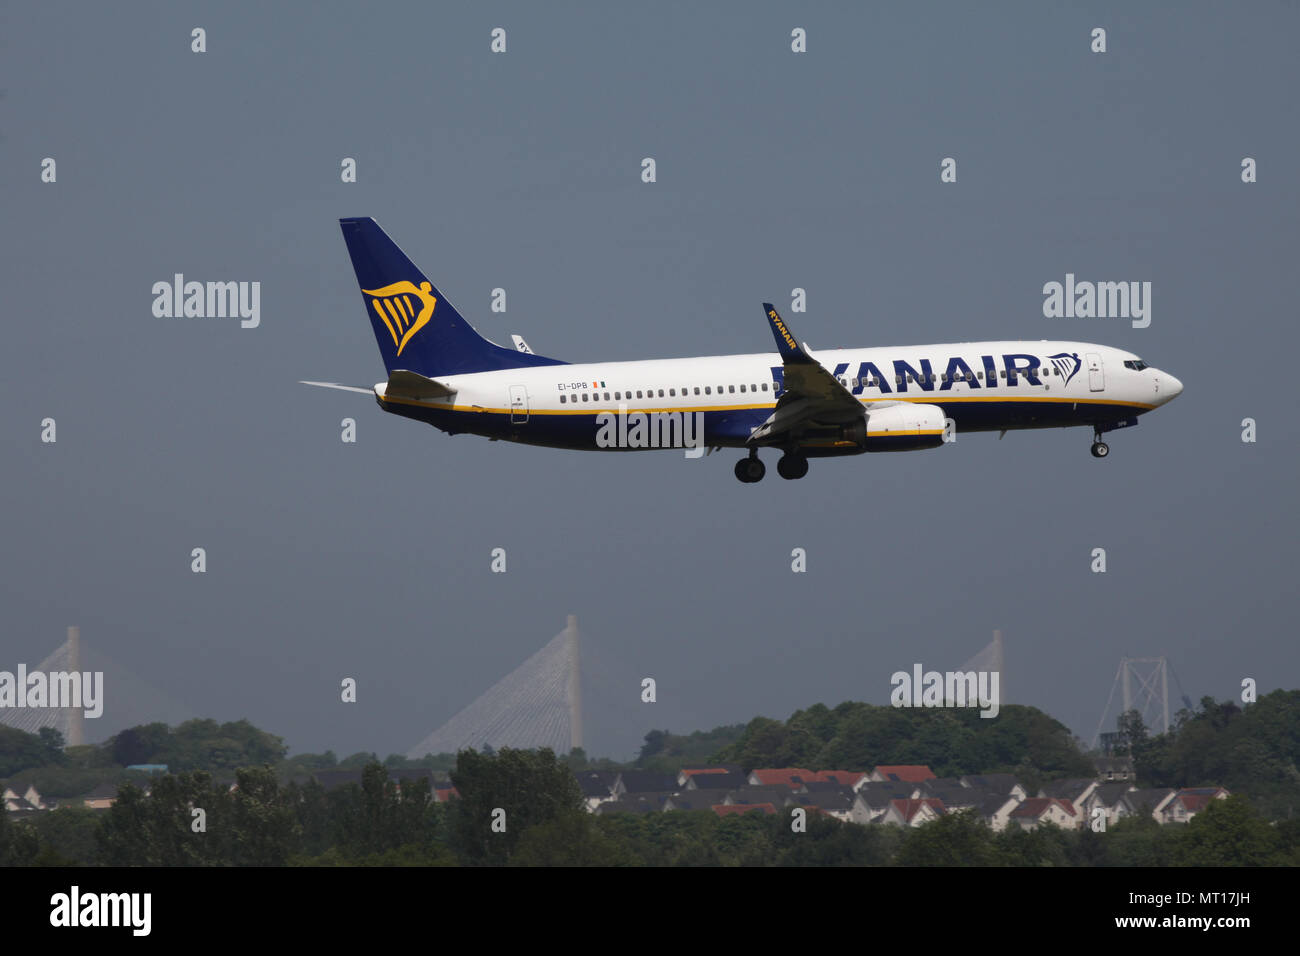 Ryanair Boeing 737-8AS plane EI-DPB flies into Edinburgh airport with the Queensferry crossing bridge in the background Stock Photo